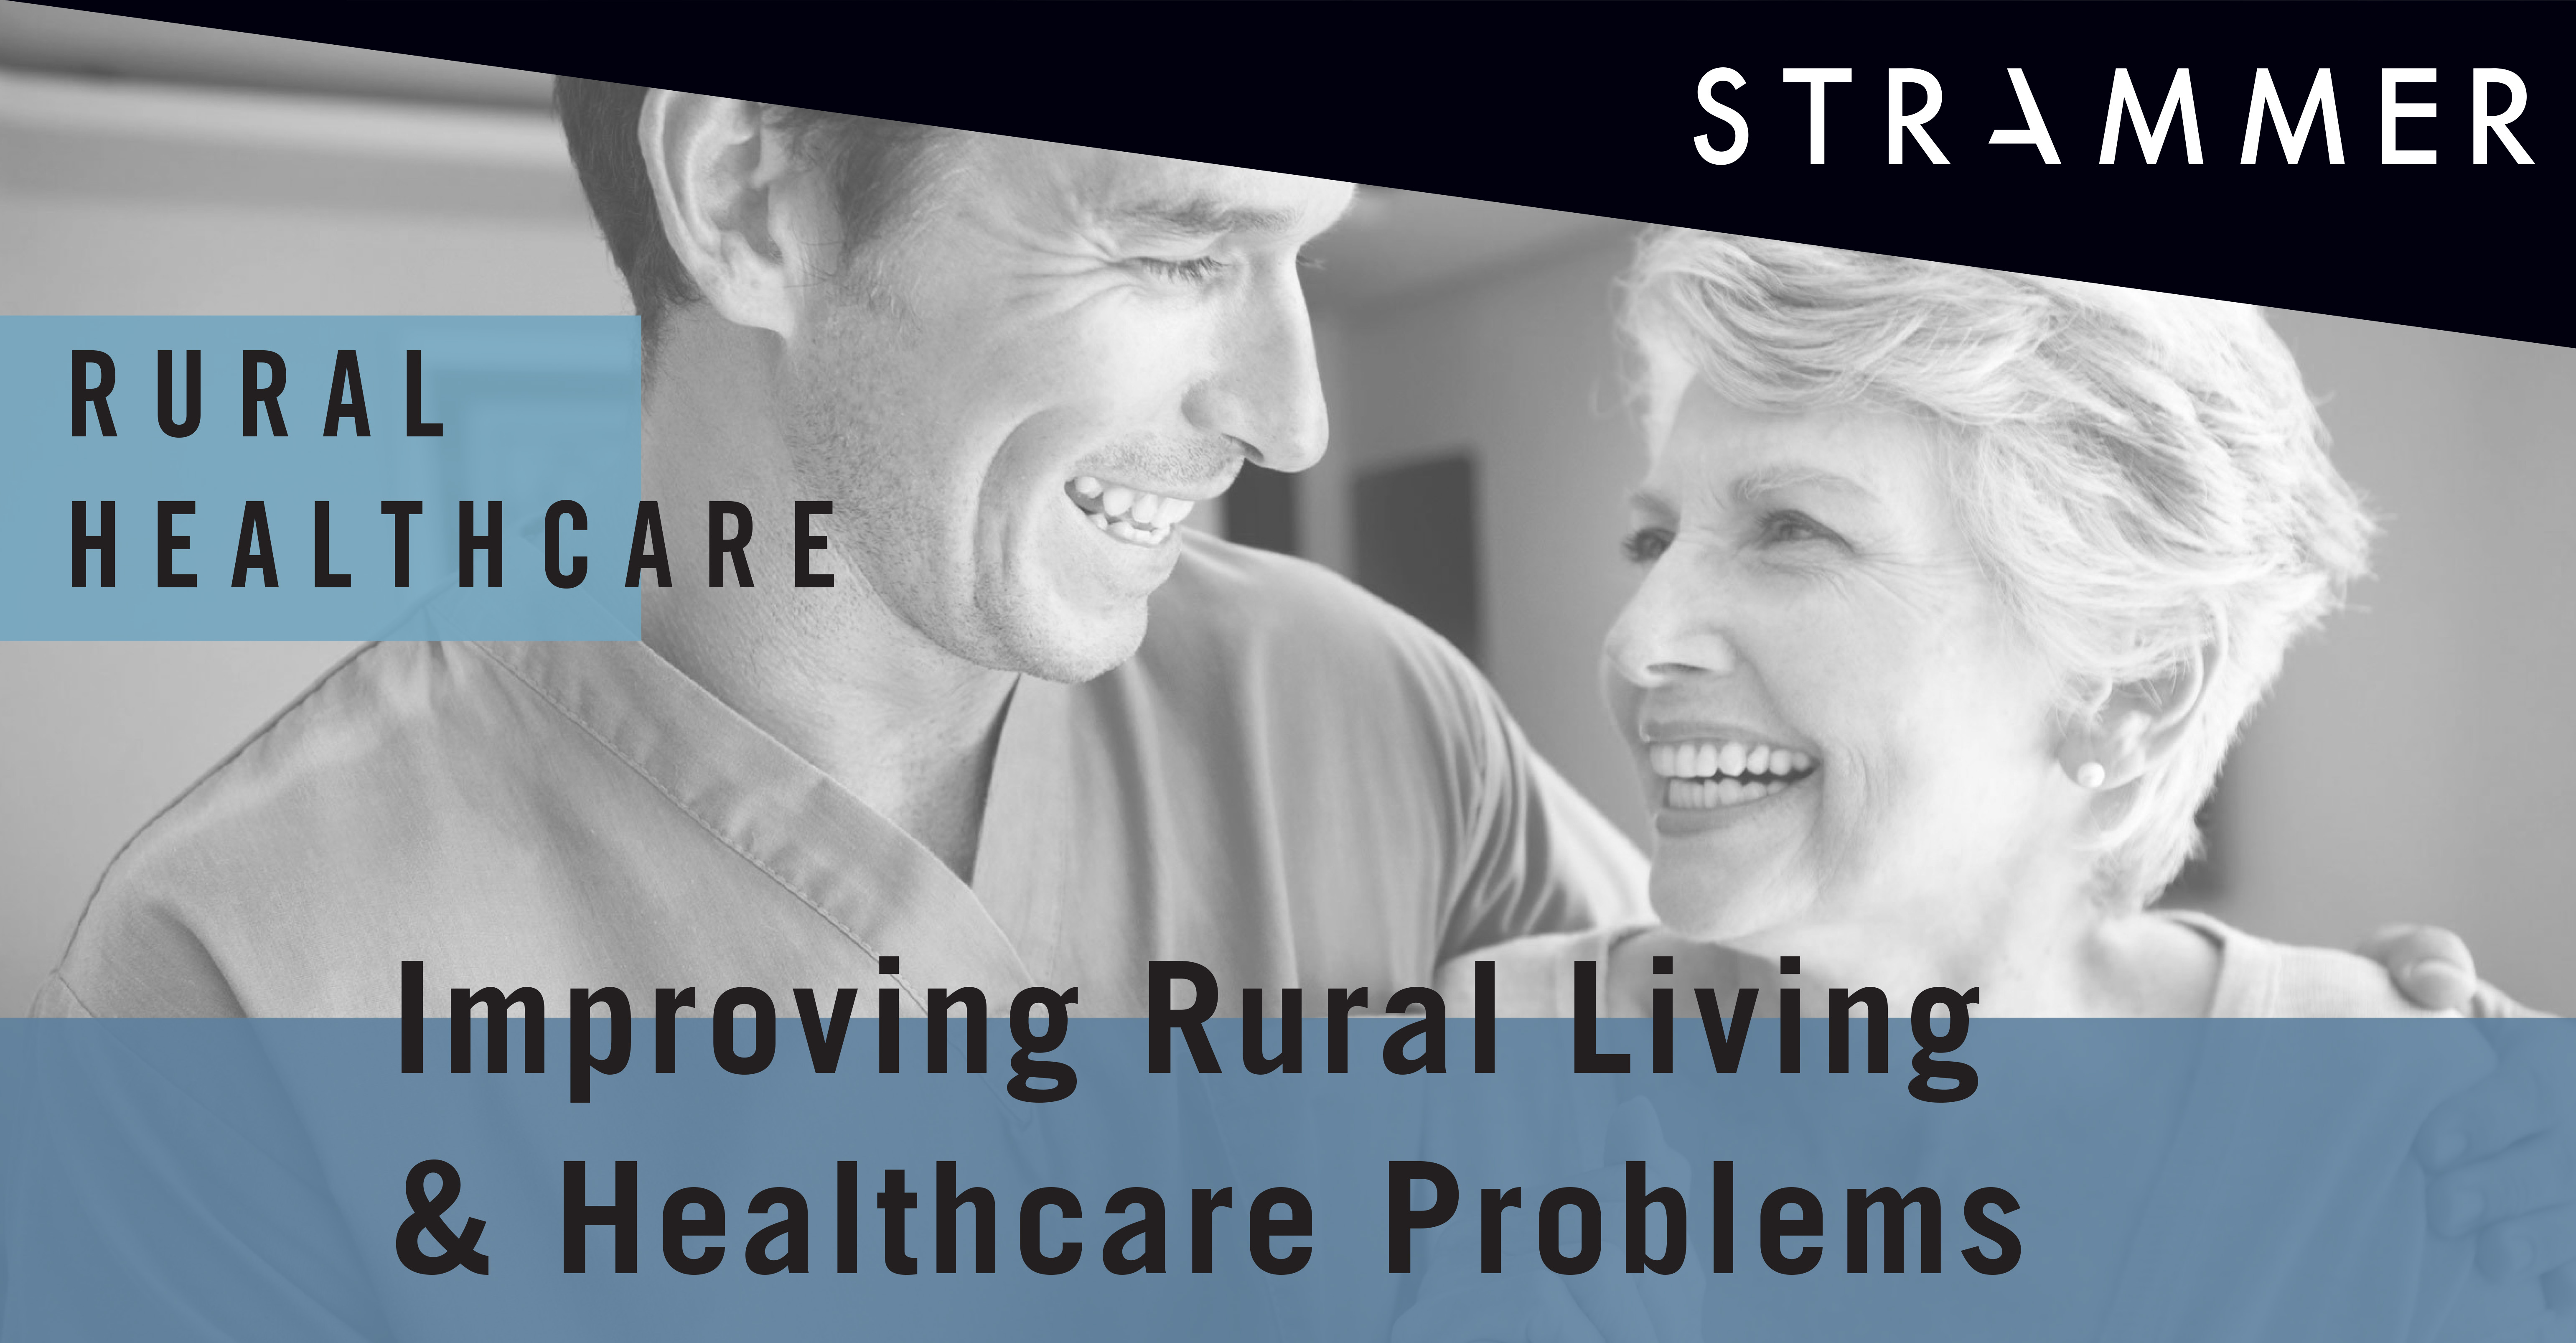 Rural Healthcare Problems